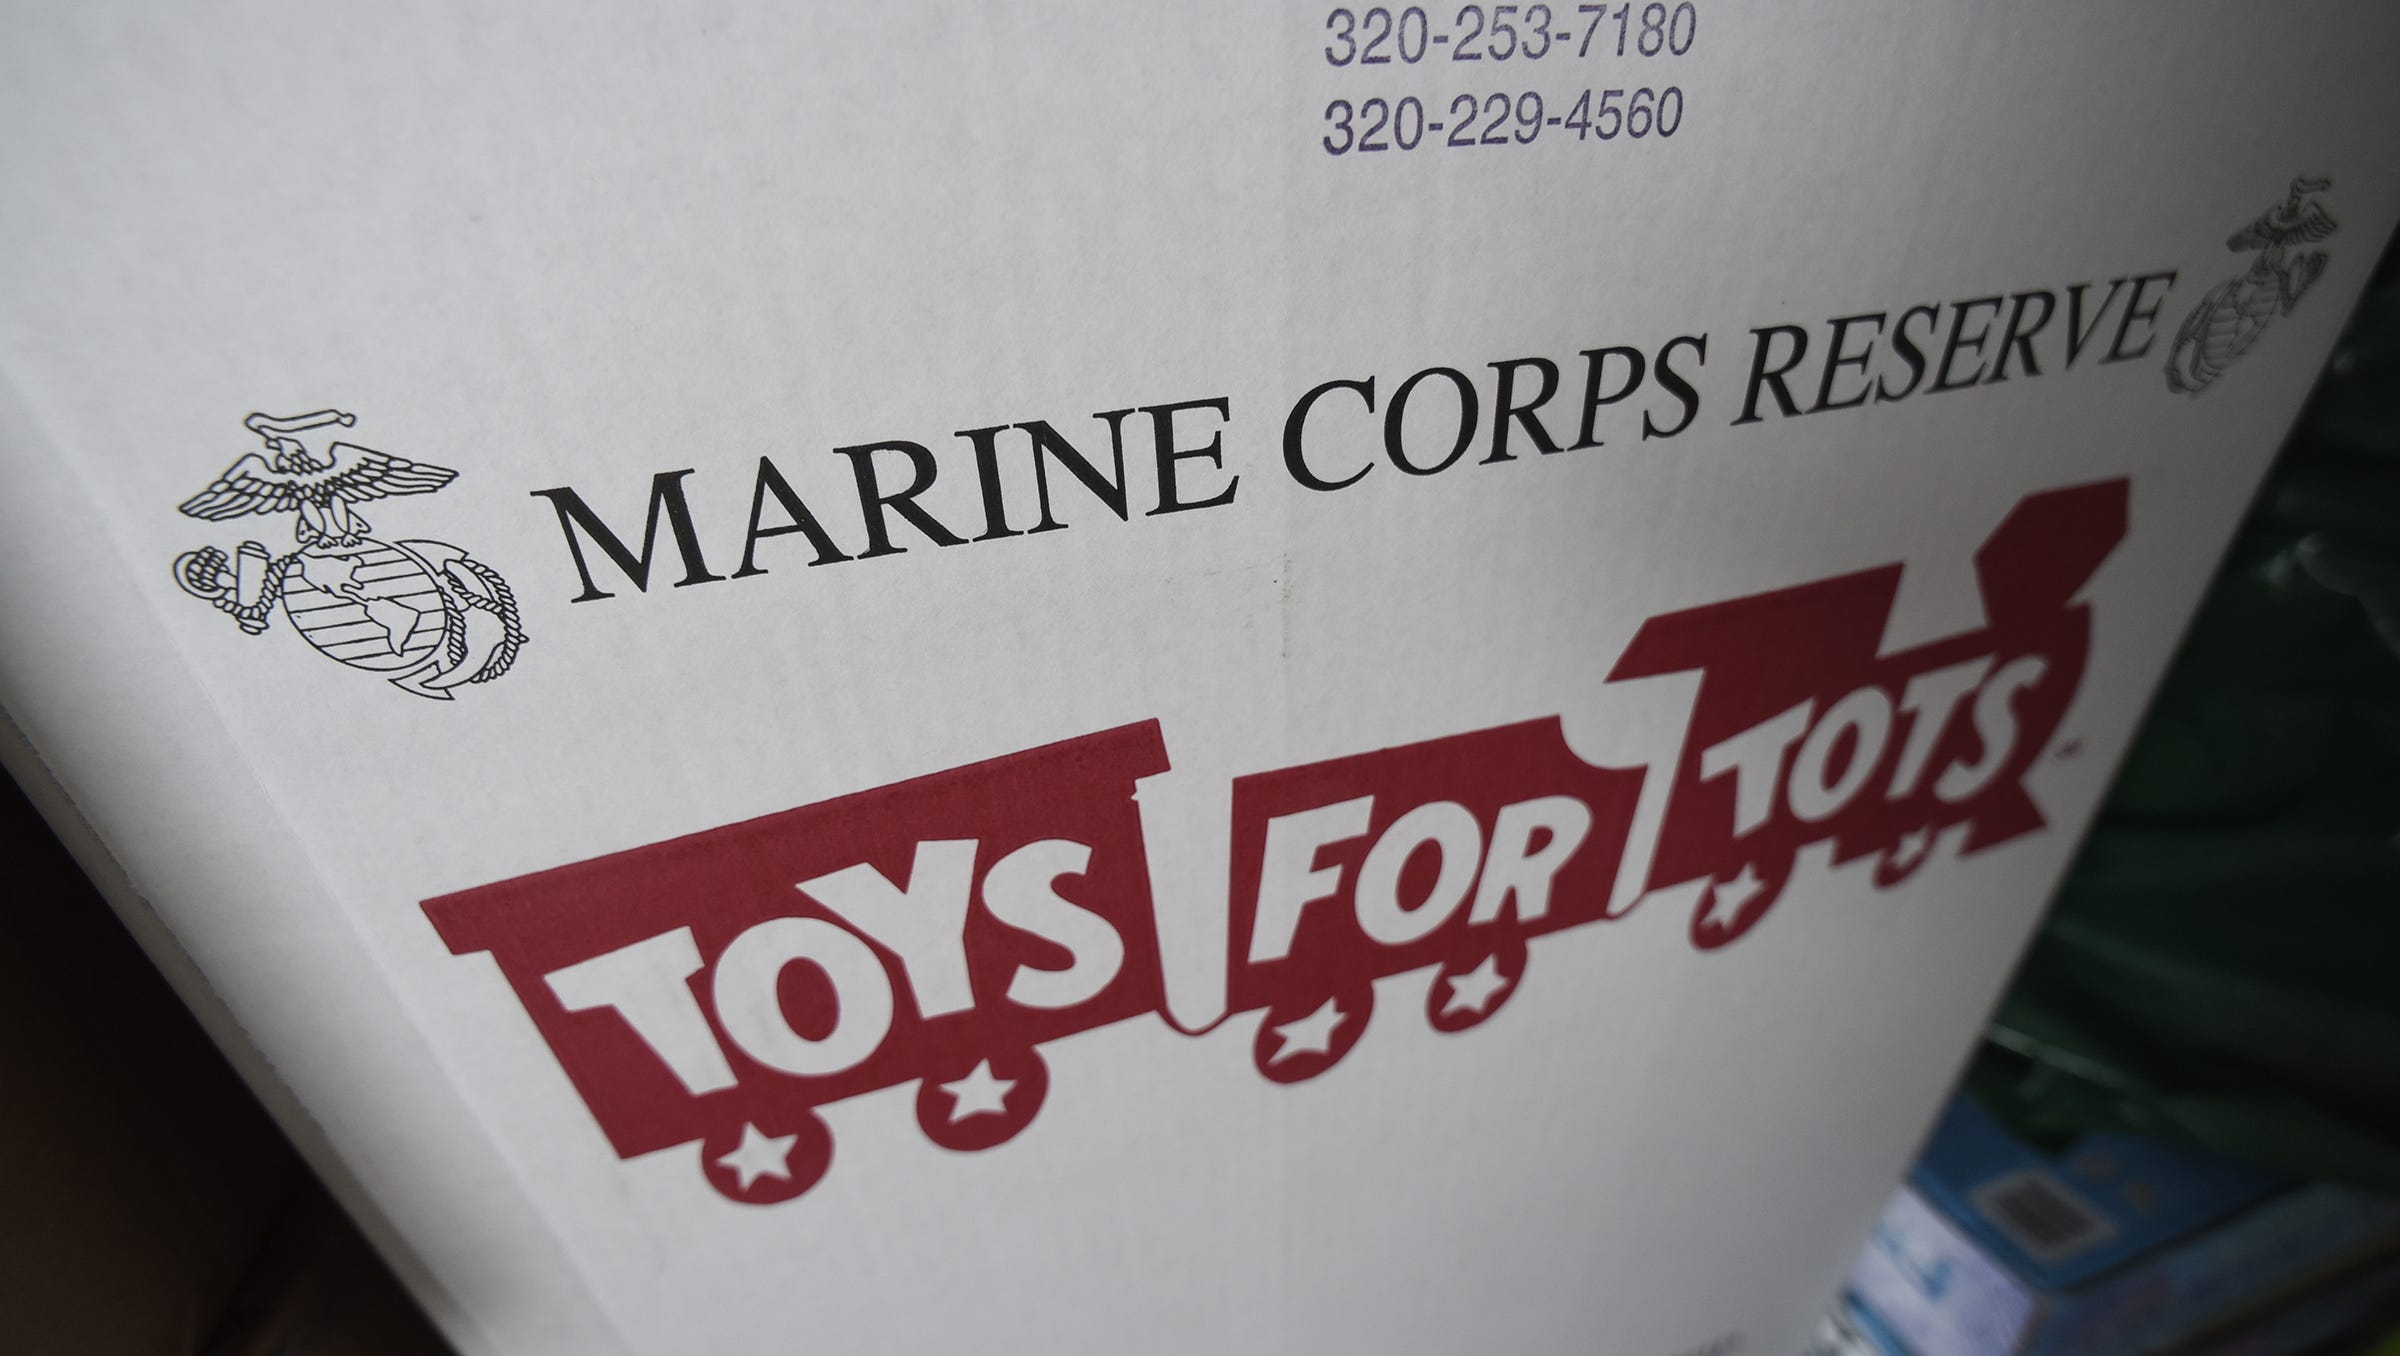 Offical Logo For Toys For Tots : Thief stole donated toys in yonkers ap